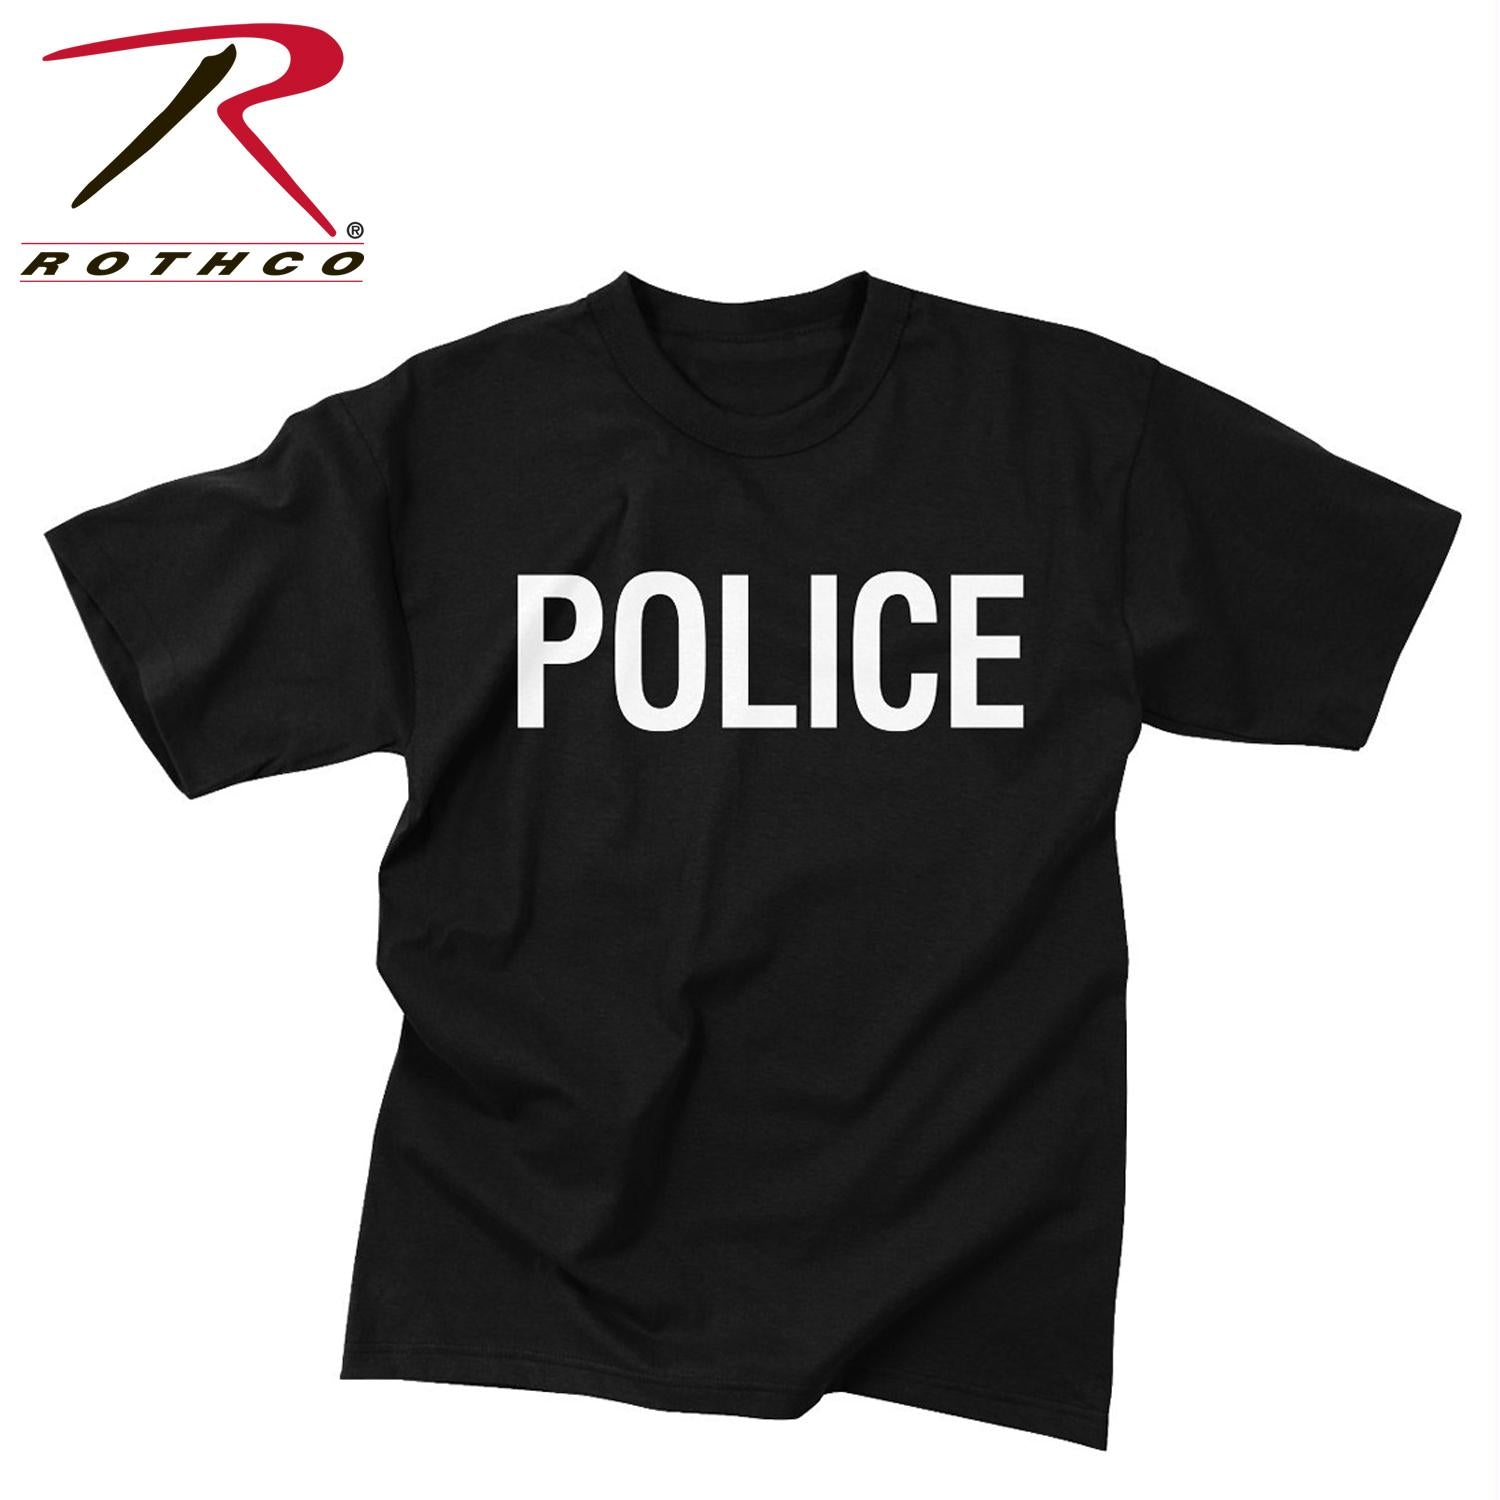 Rothco 2-Sided Police T-Shirt - 2XL